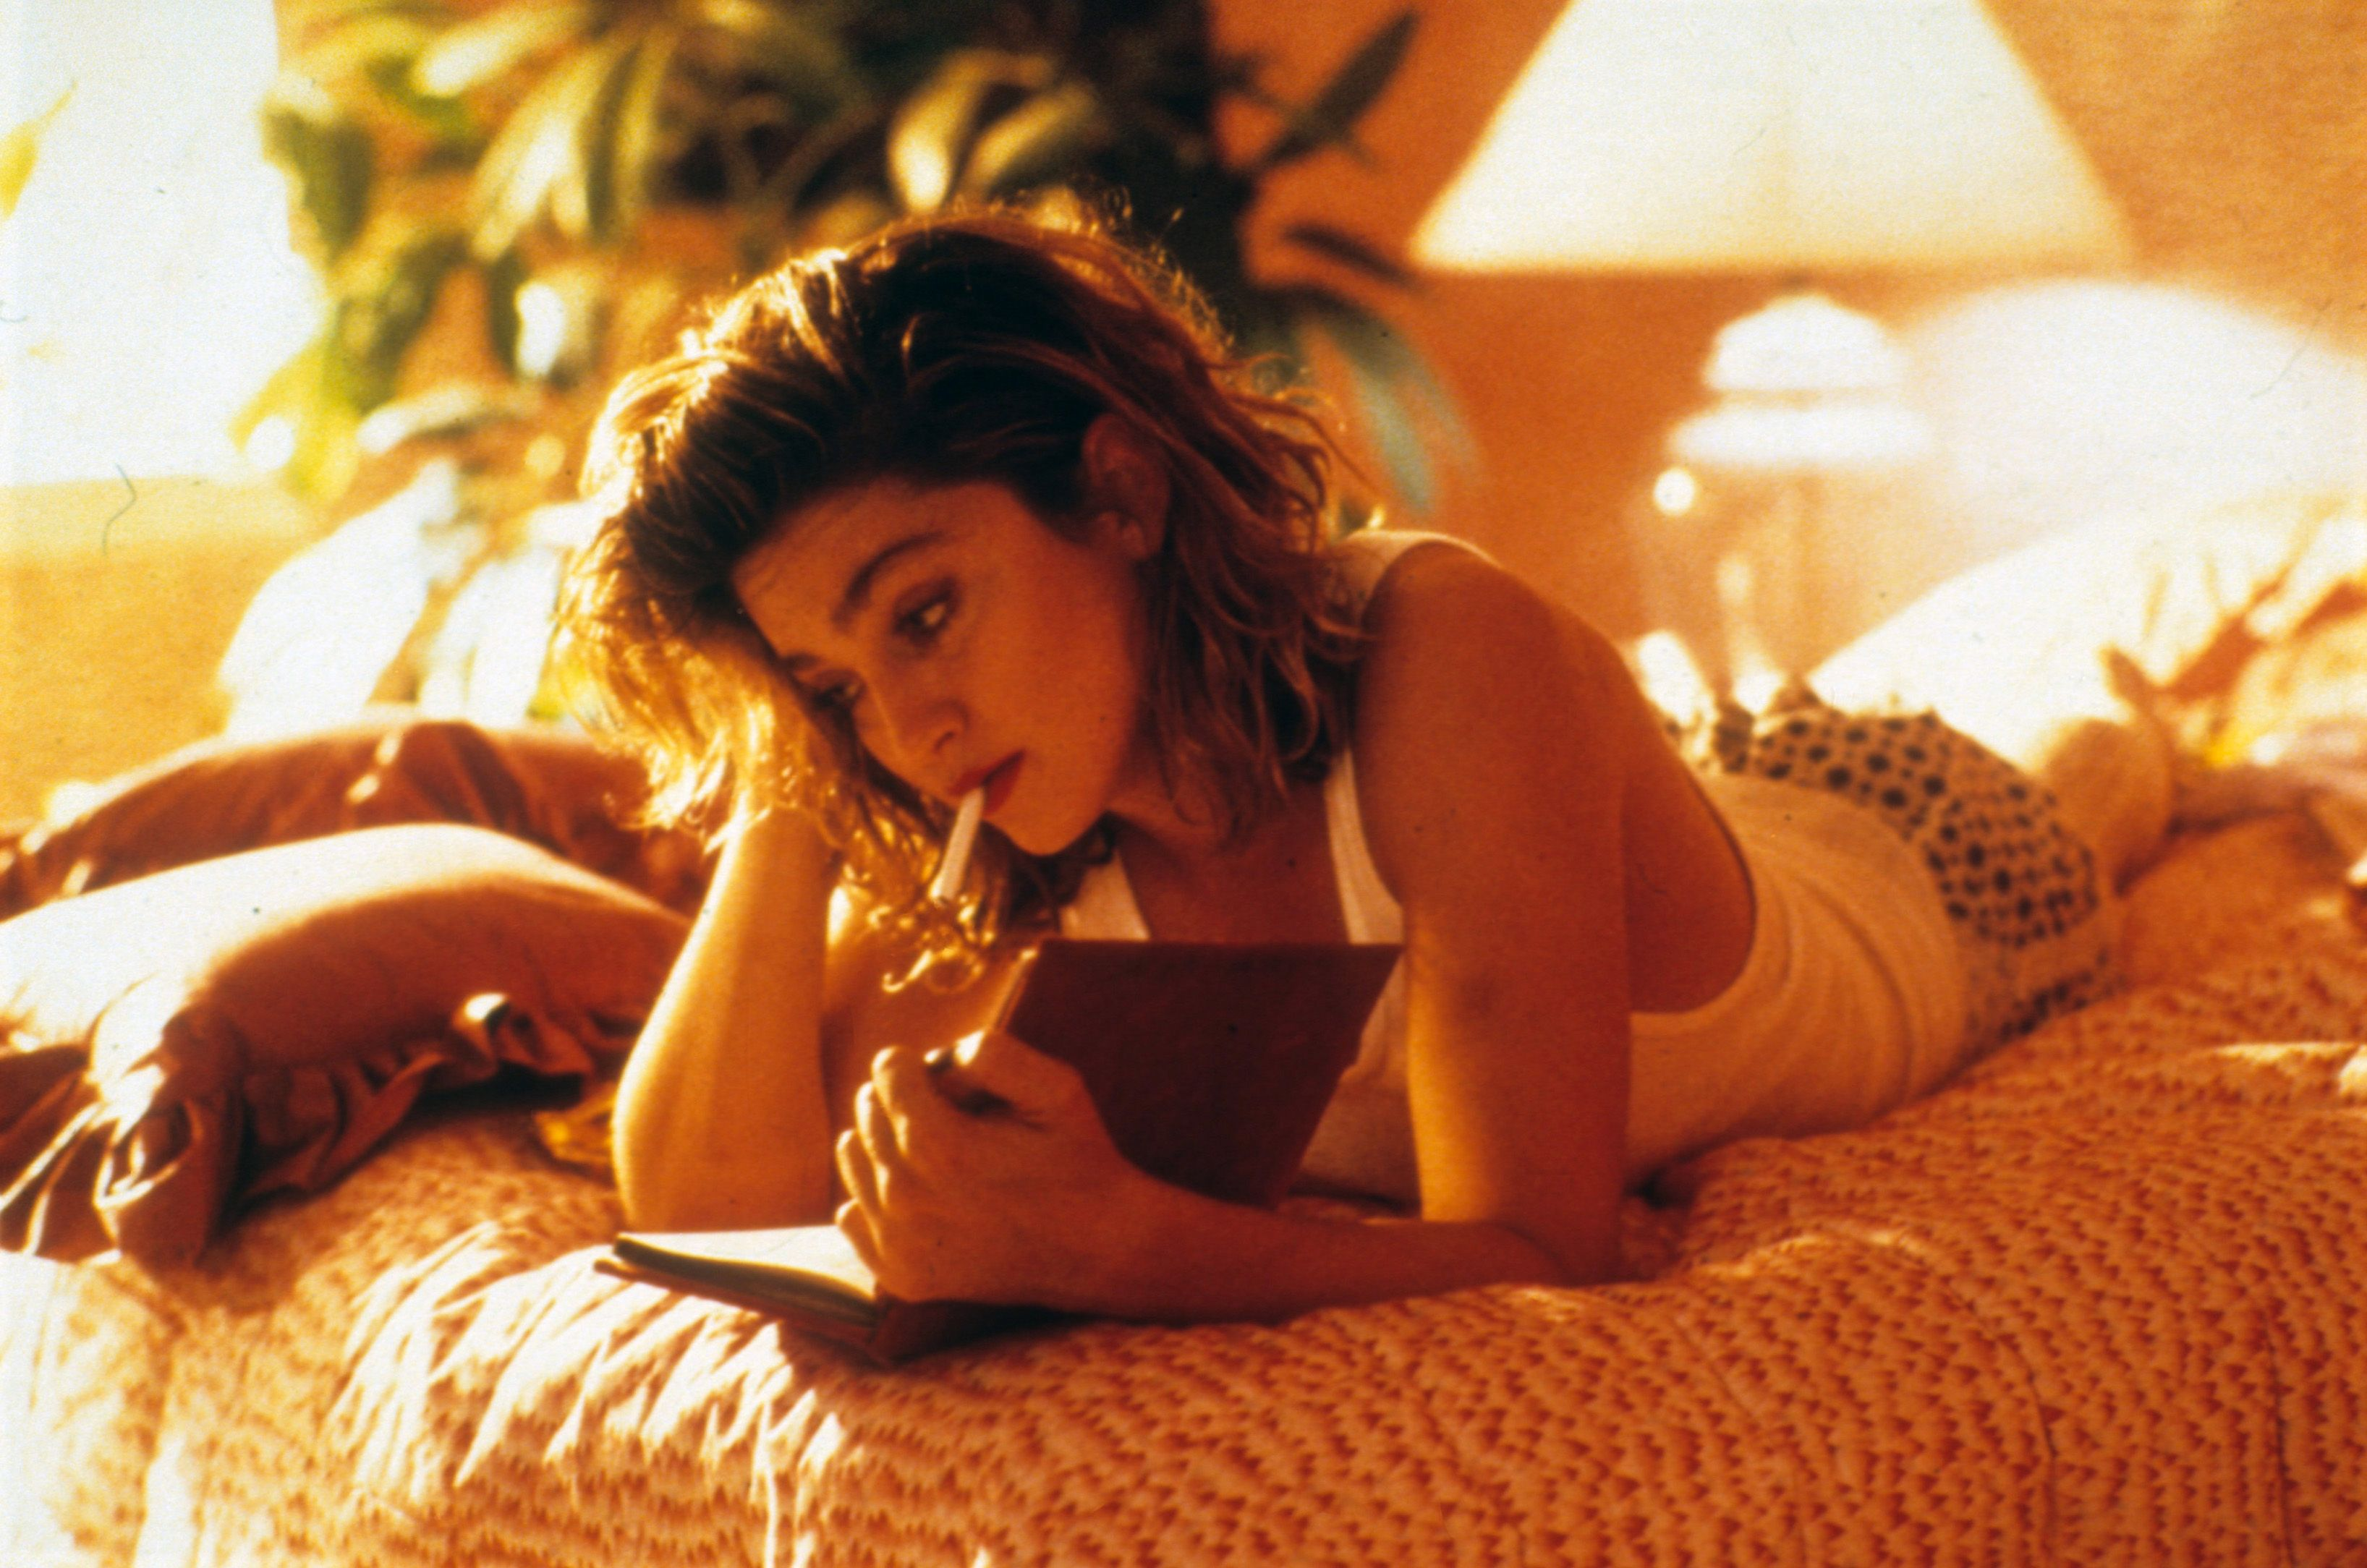 11 erotic films that every woman should watch